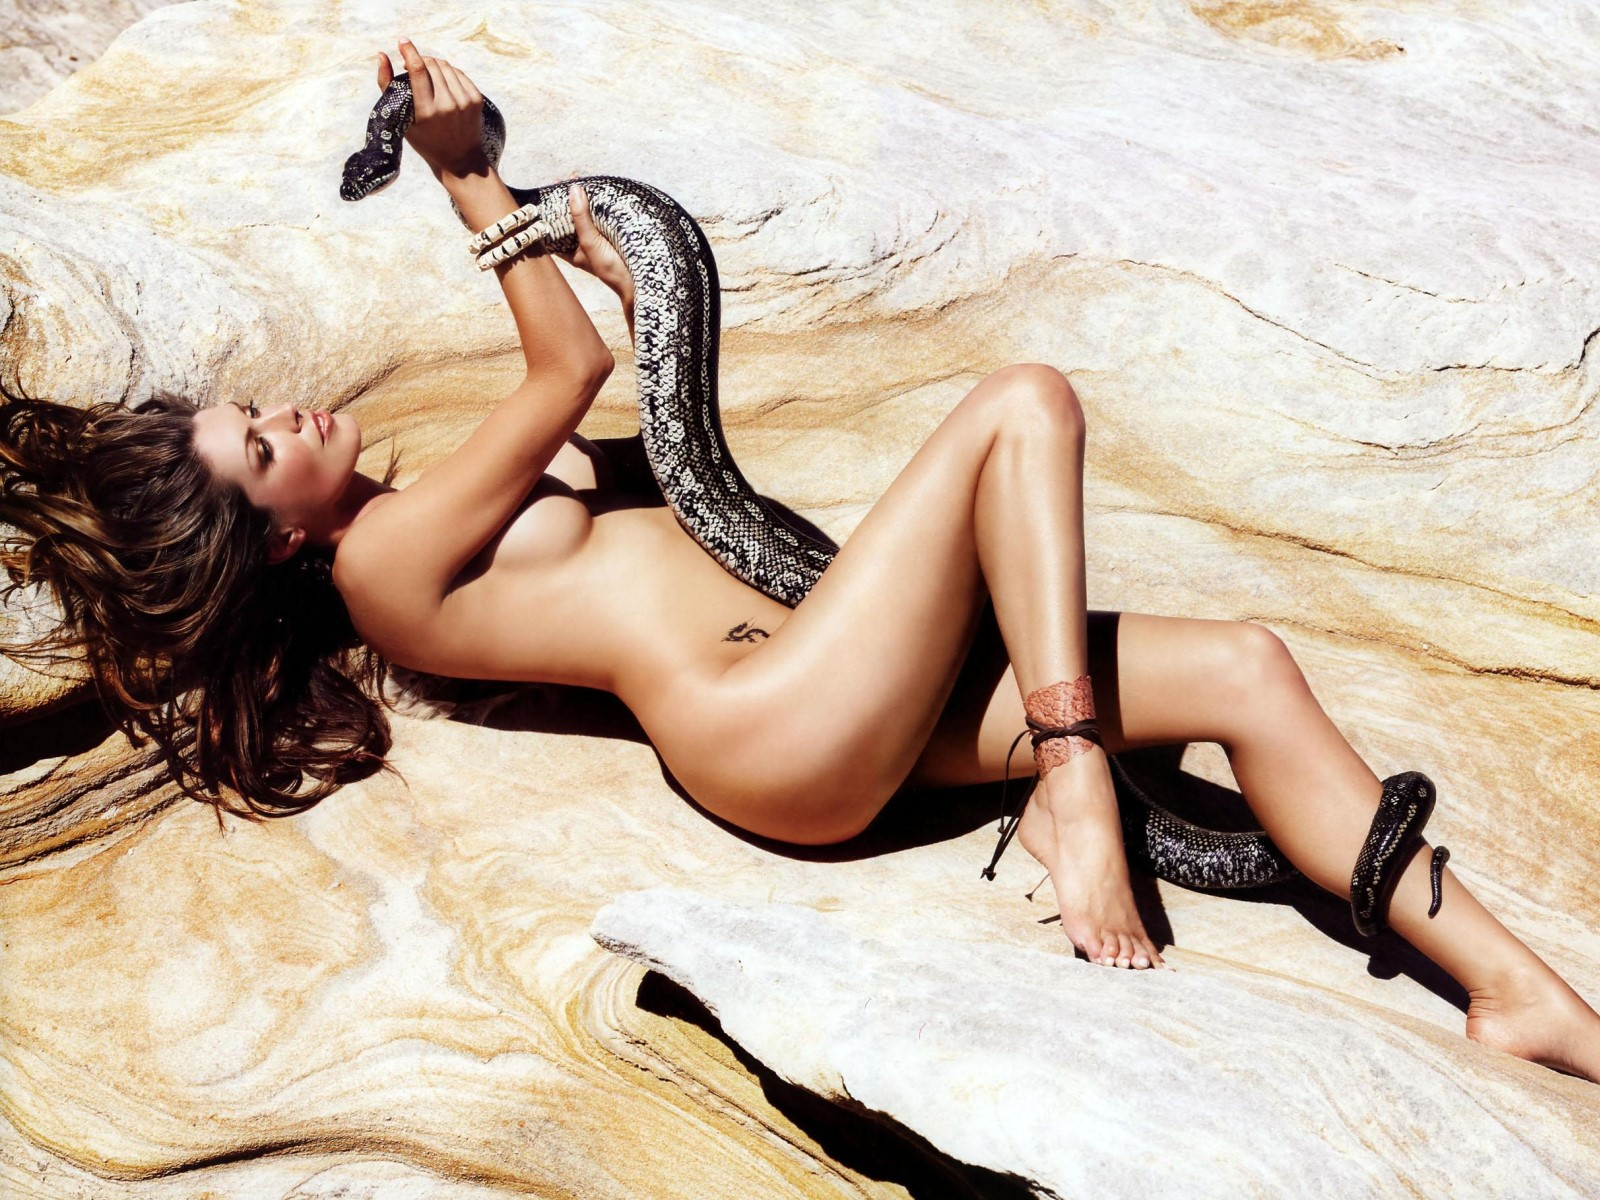 Sexy gallaries with snakes porn pic